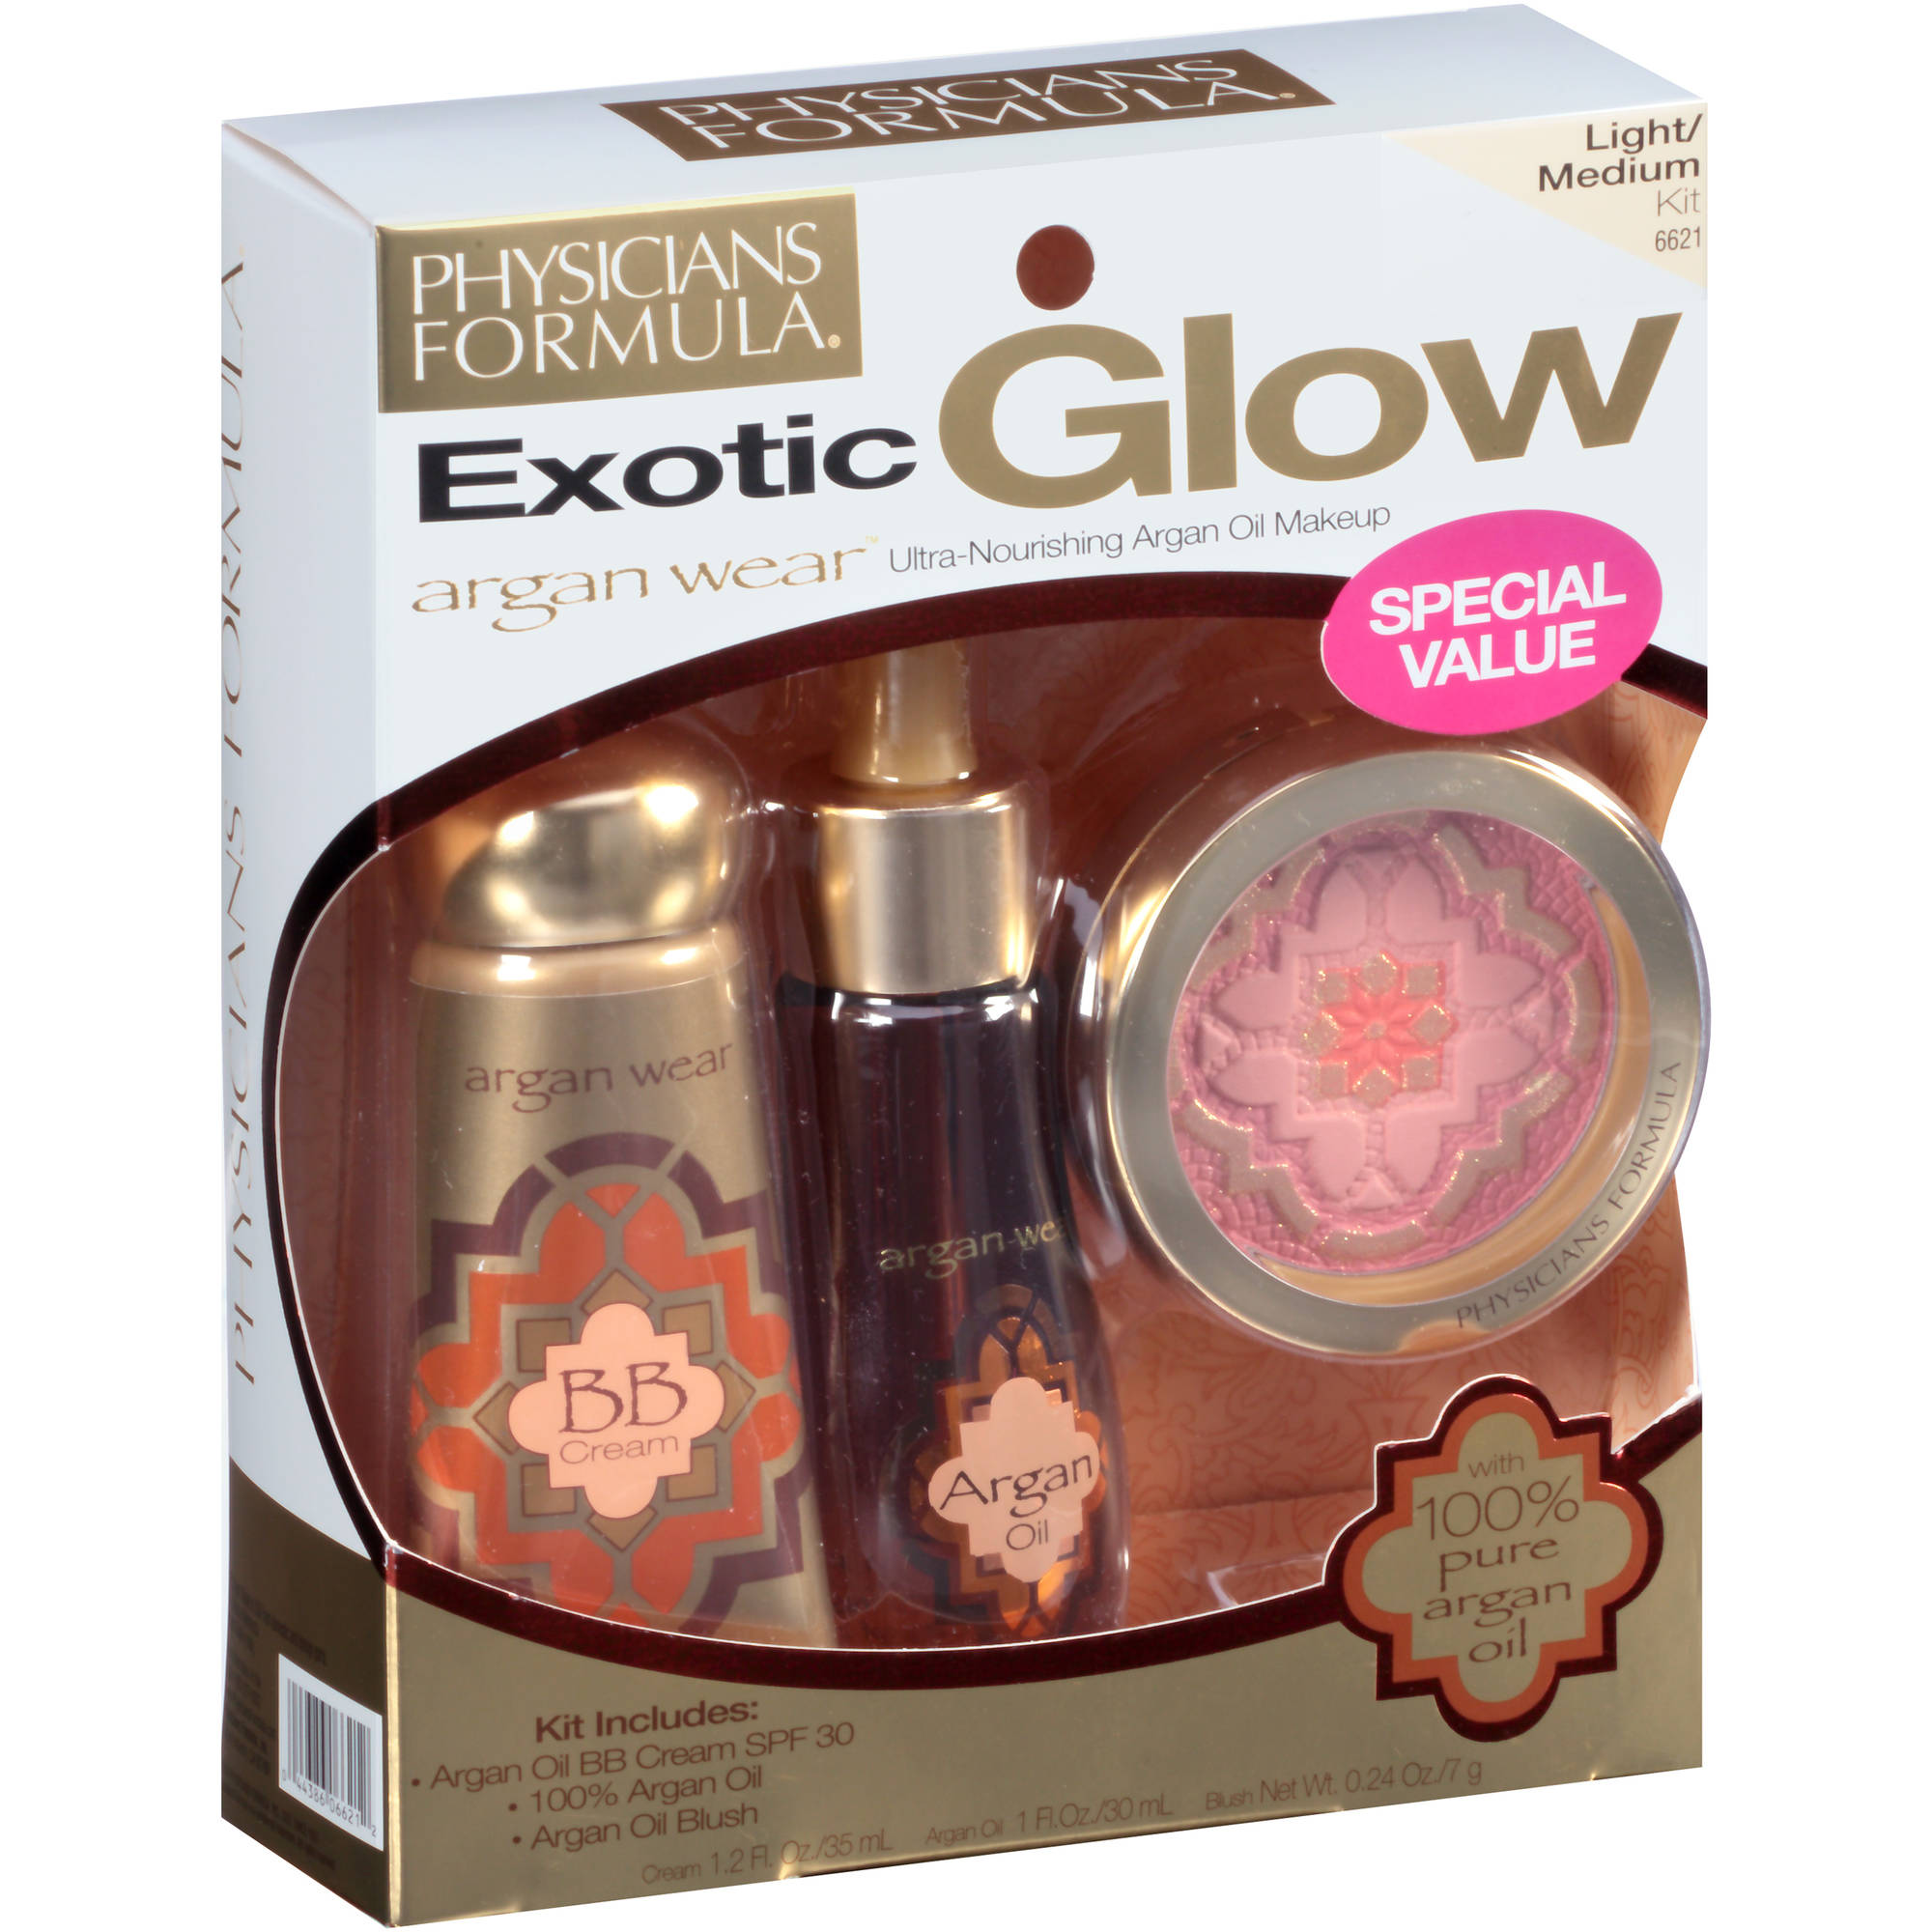 Physician's Formula Argan Wear Exotic Glow Ultra-Nourishing Makeup Kit, Light/Medium 6621C, 3 pc